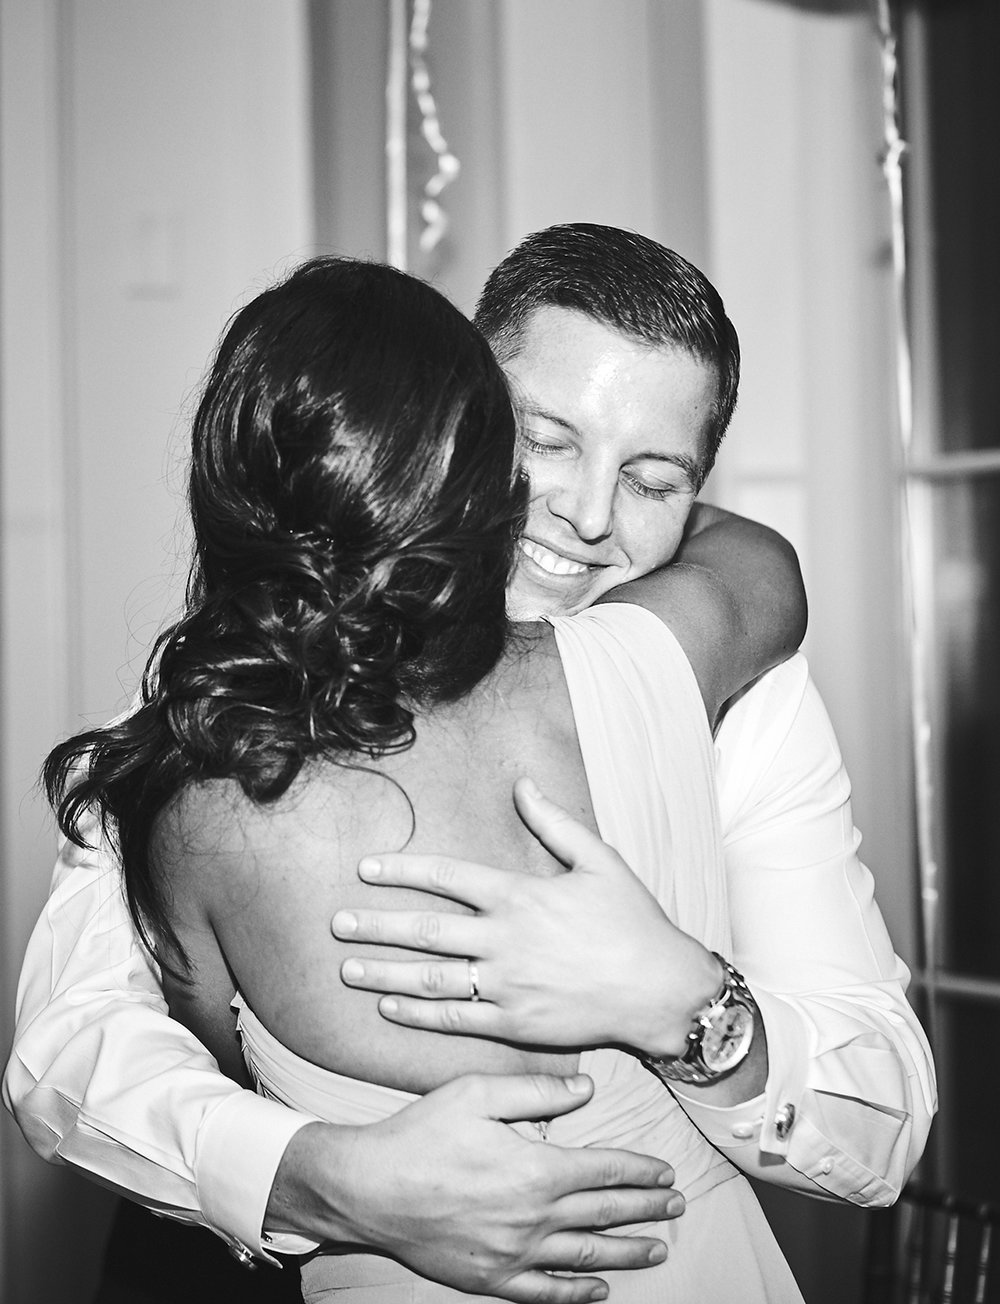 180915_TheRylandInnWeddingPhotography_StylishModernWeddingPhotography_NewJerseyWeddingPhotographer_by_BriJohnsonWeddings_0174.jpg